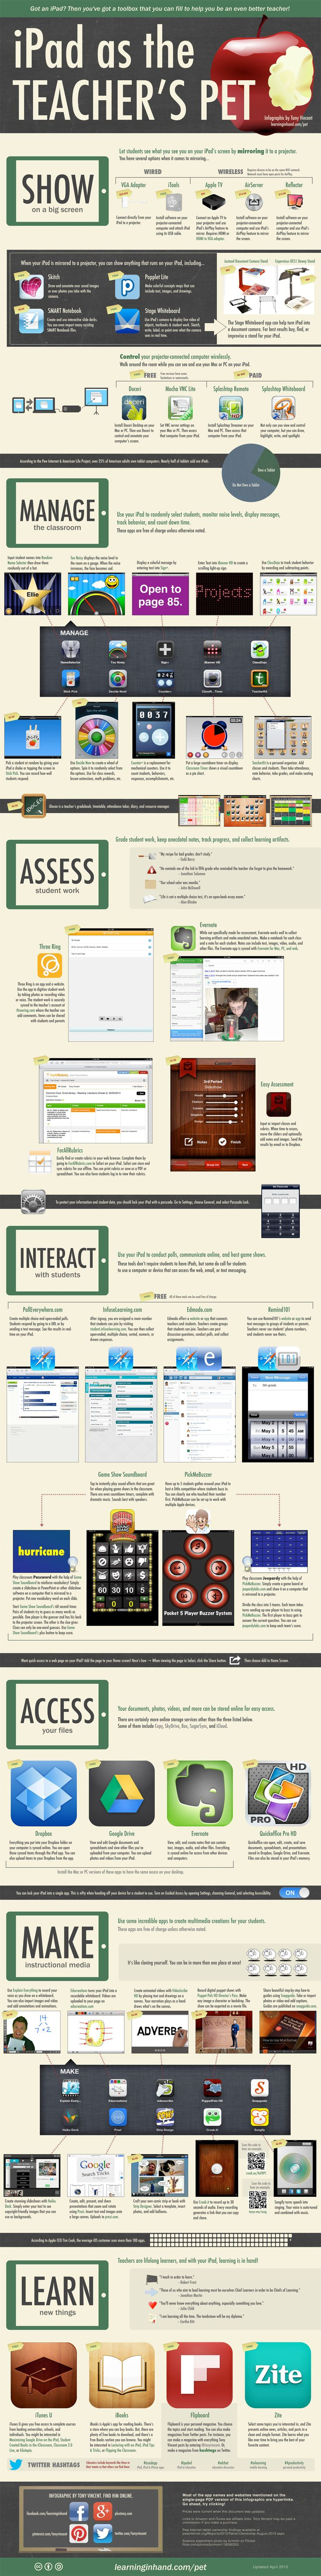 iPad as the Teacher's Pet [Infographic]